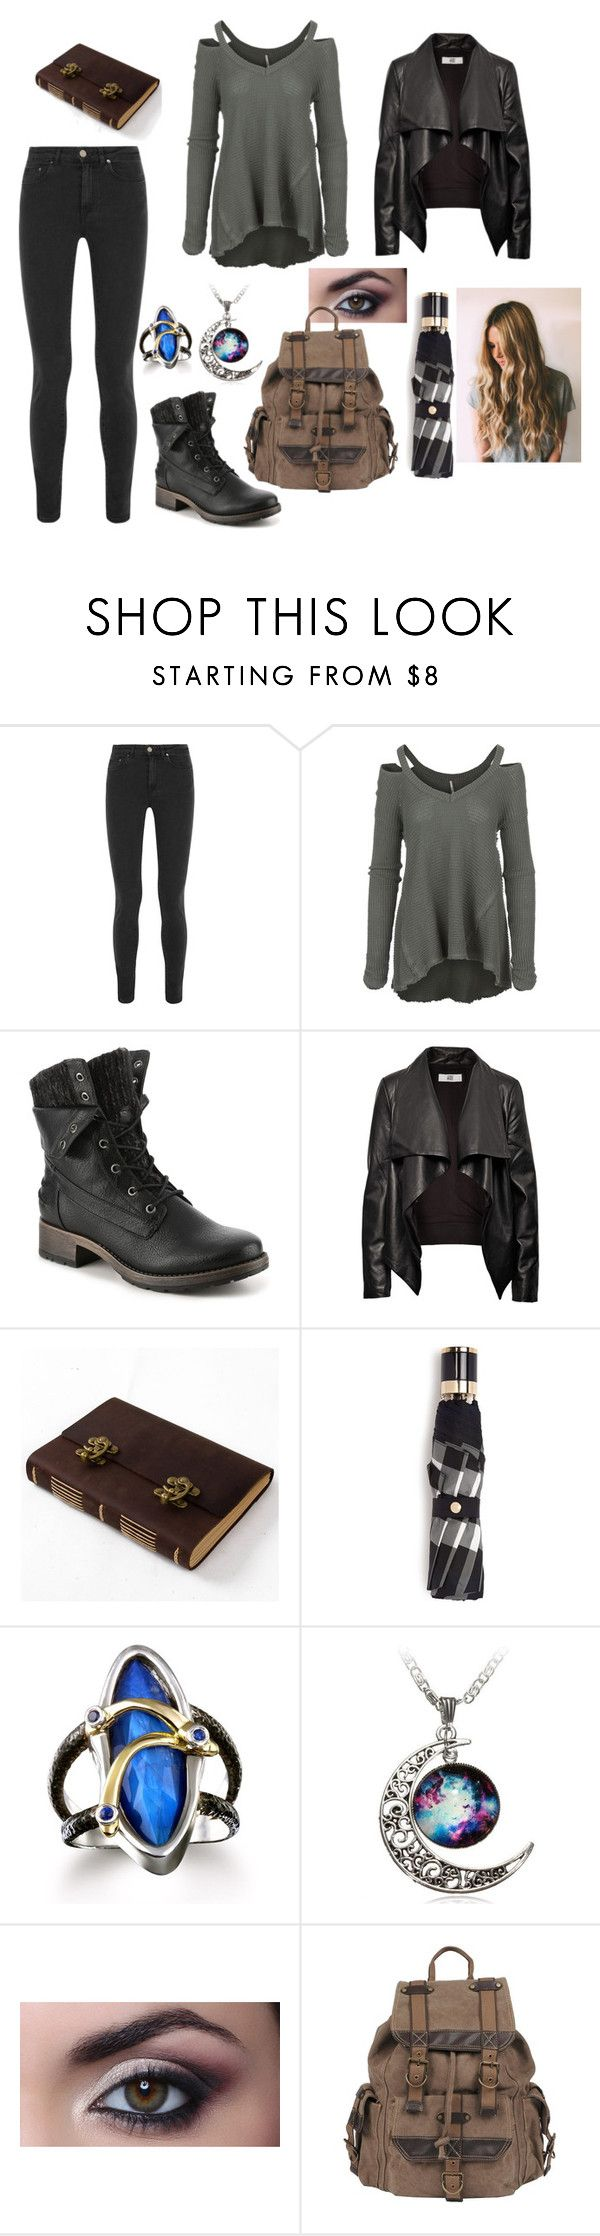 """61"" by rebecca-sohm ❤ liked on Polyvore featuring Acne Studios, Free People, HIDE, Burberry, Masquerade and Wilsons Leather"